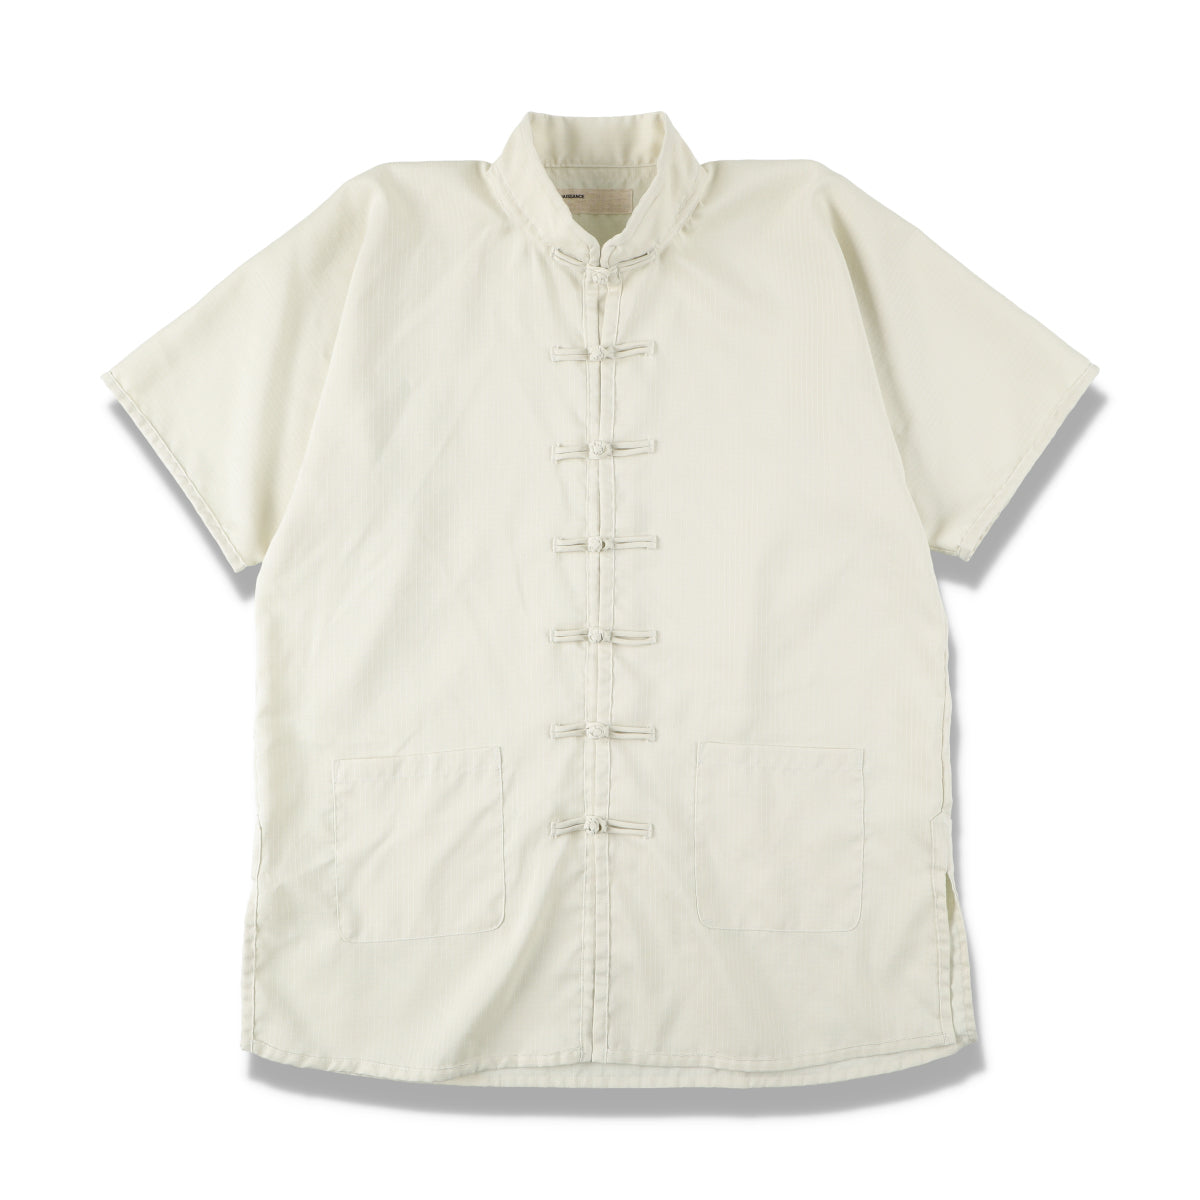 CHINA HS SHIRT / OFF WHITE (21S-NSA-SH-03)